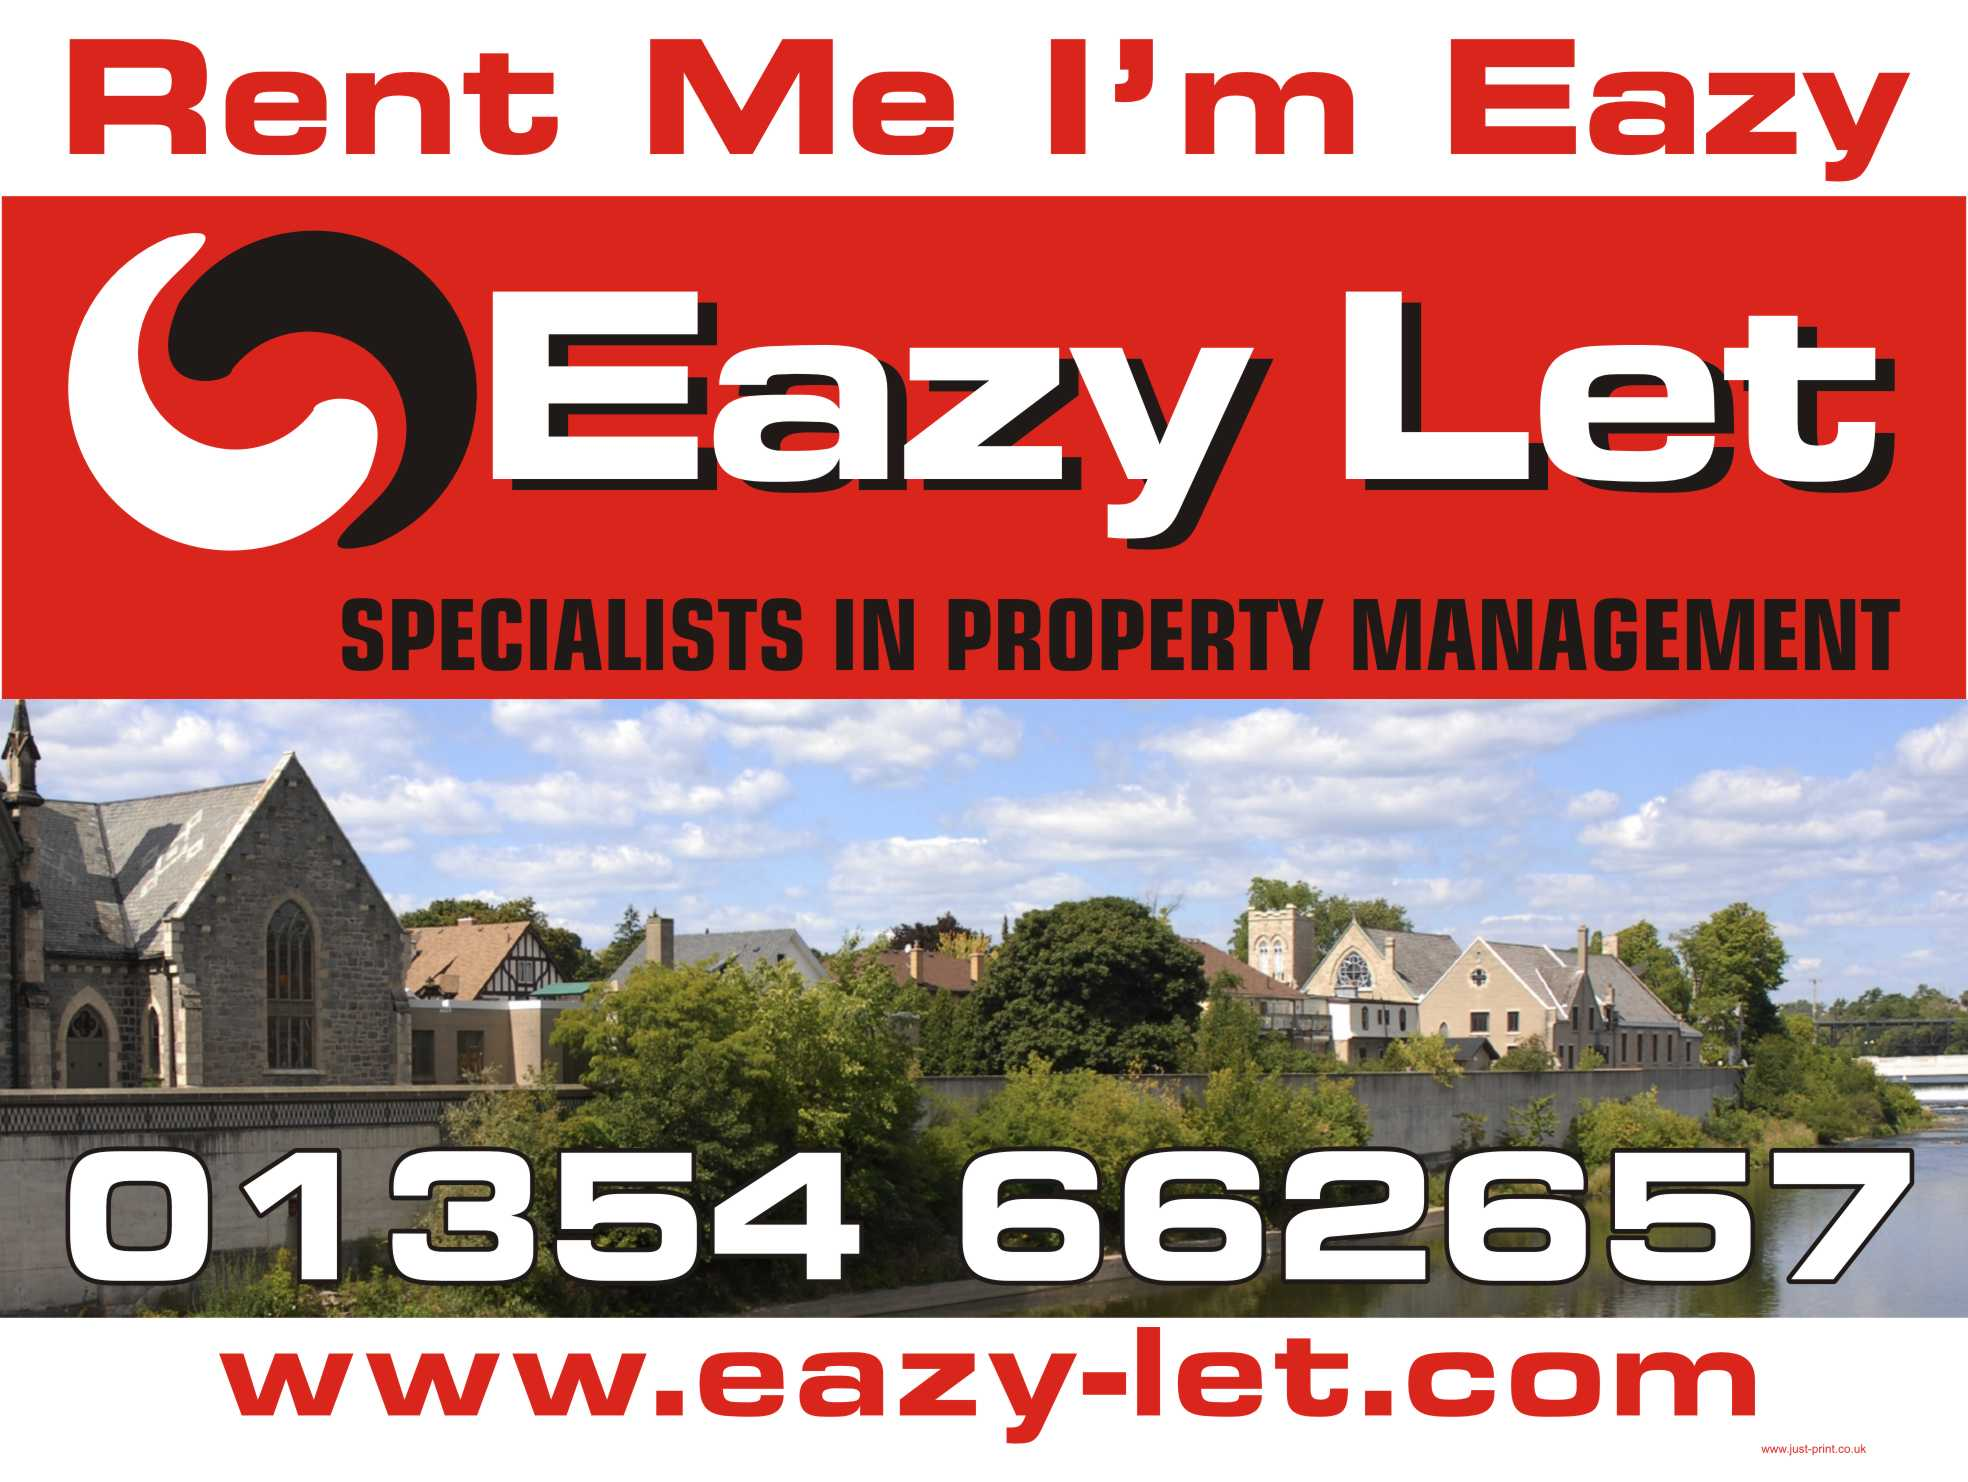 estateagentboardshop-eazy-let